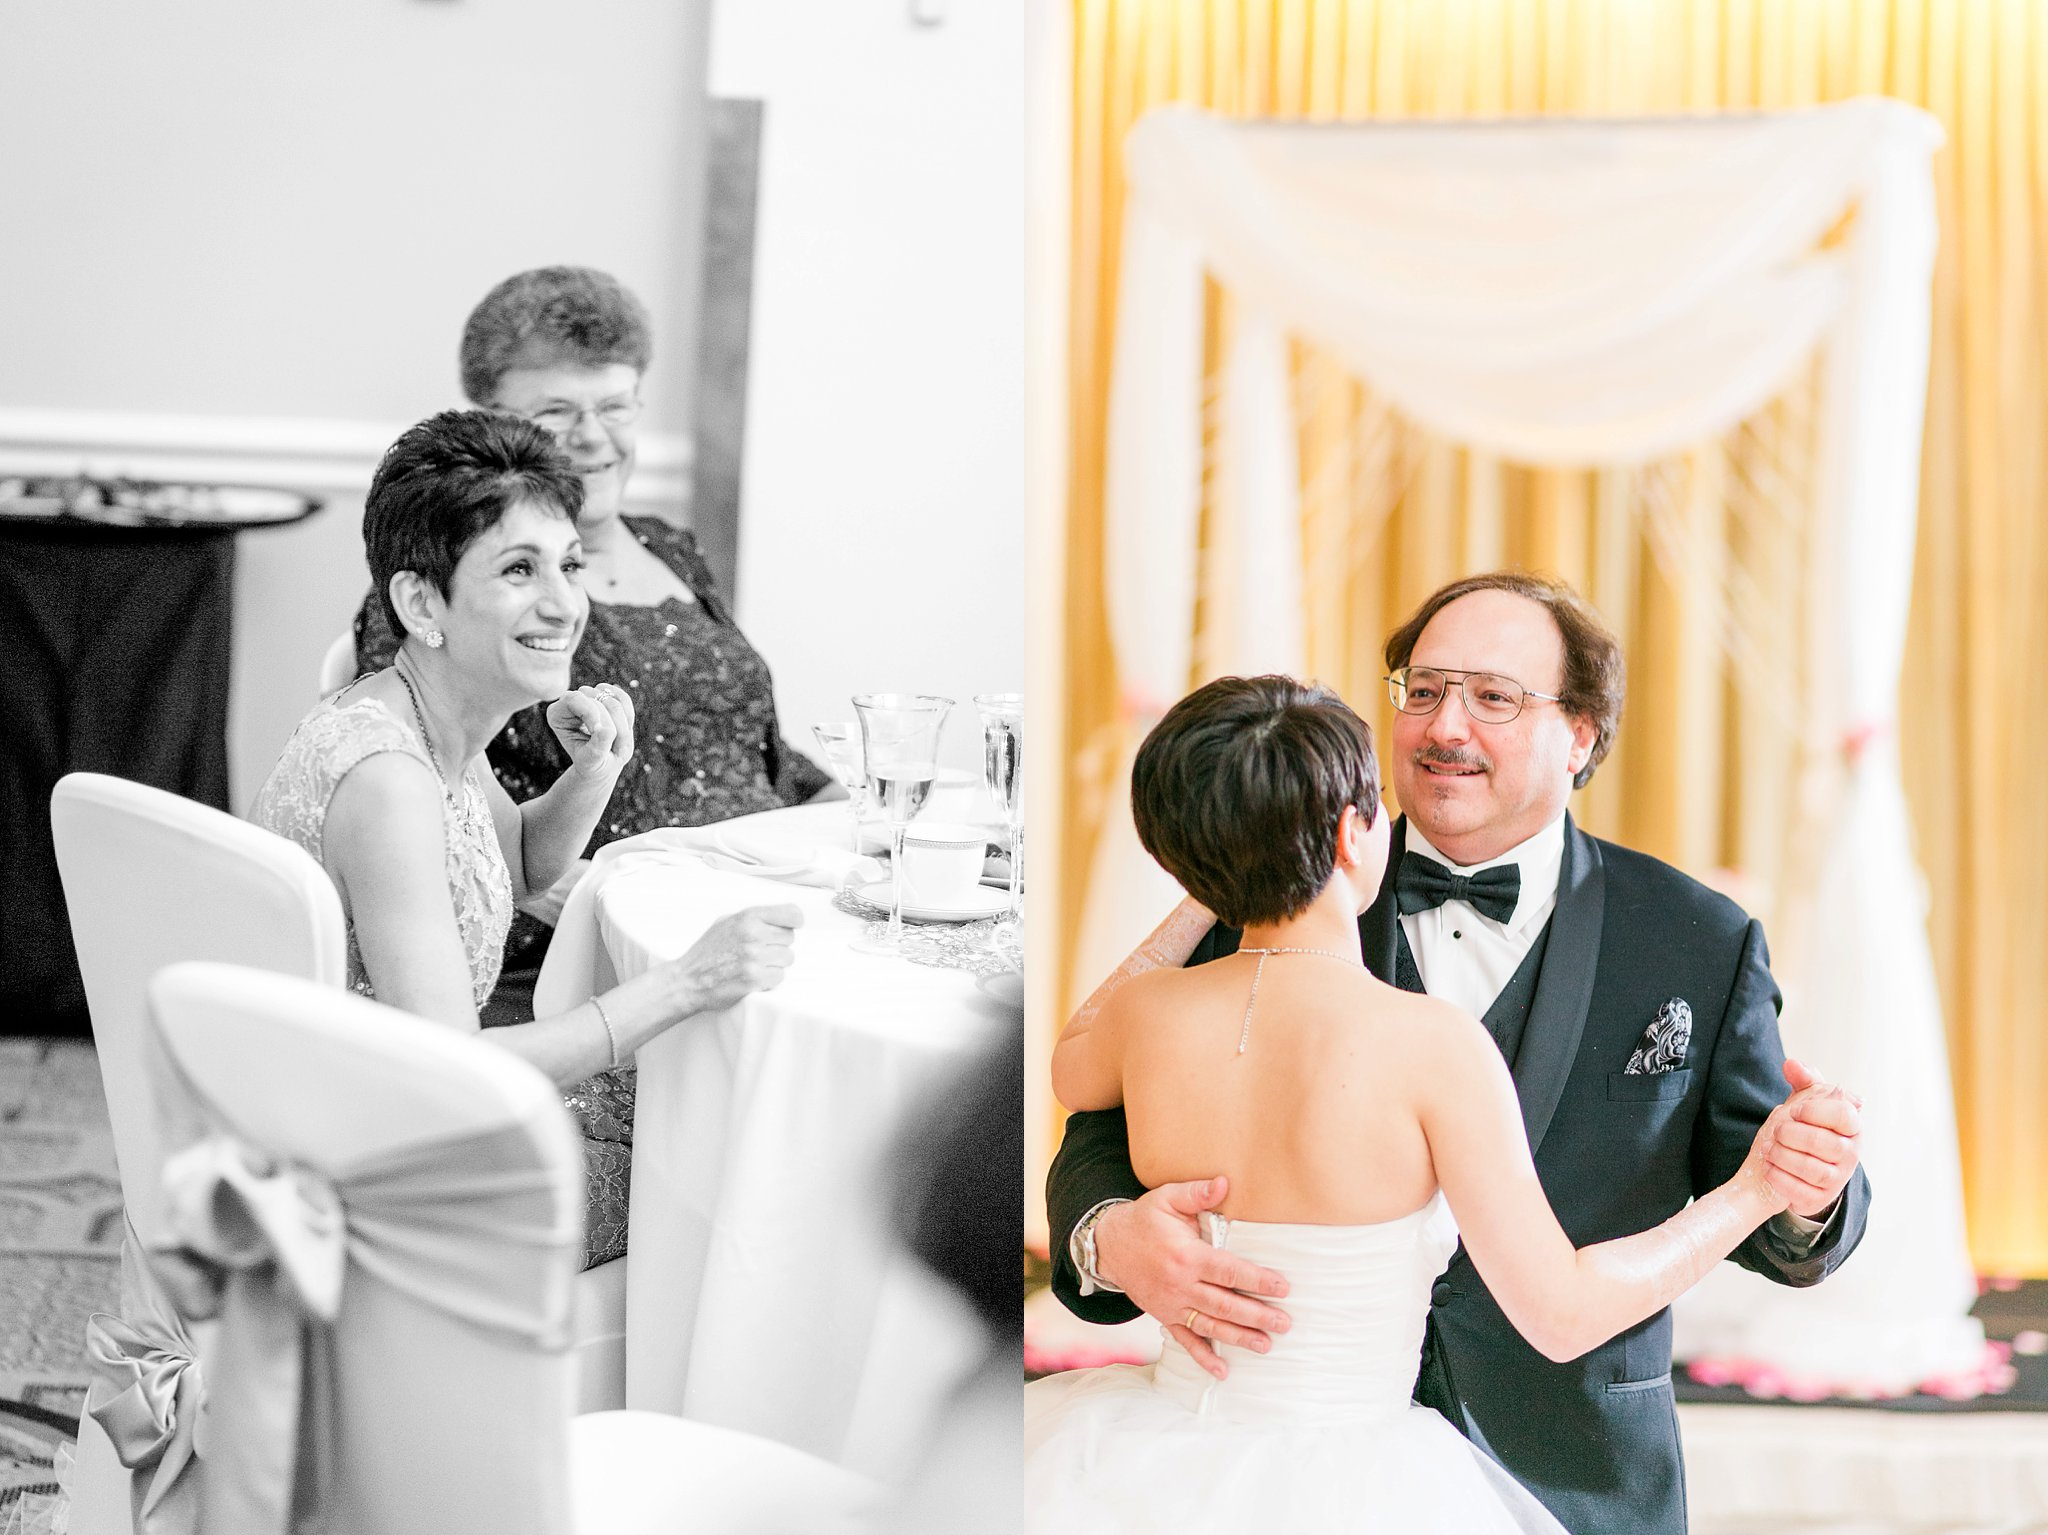 Mayflower Hotel Wedding Photos DC Pink & Gold Winter Wedding Tori & Tyler-483_photo.jpg